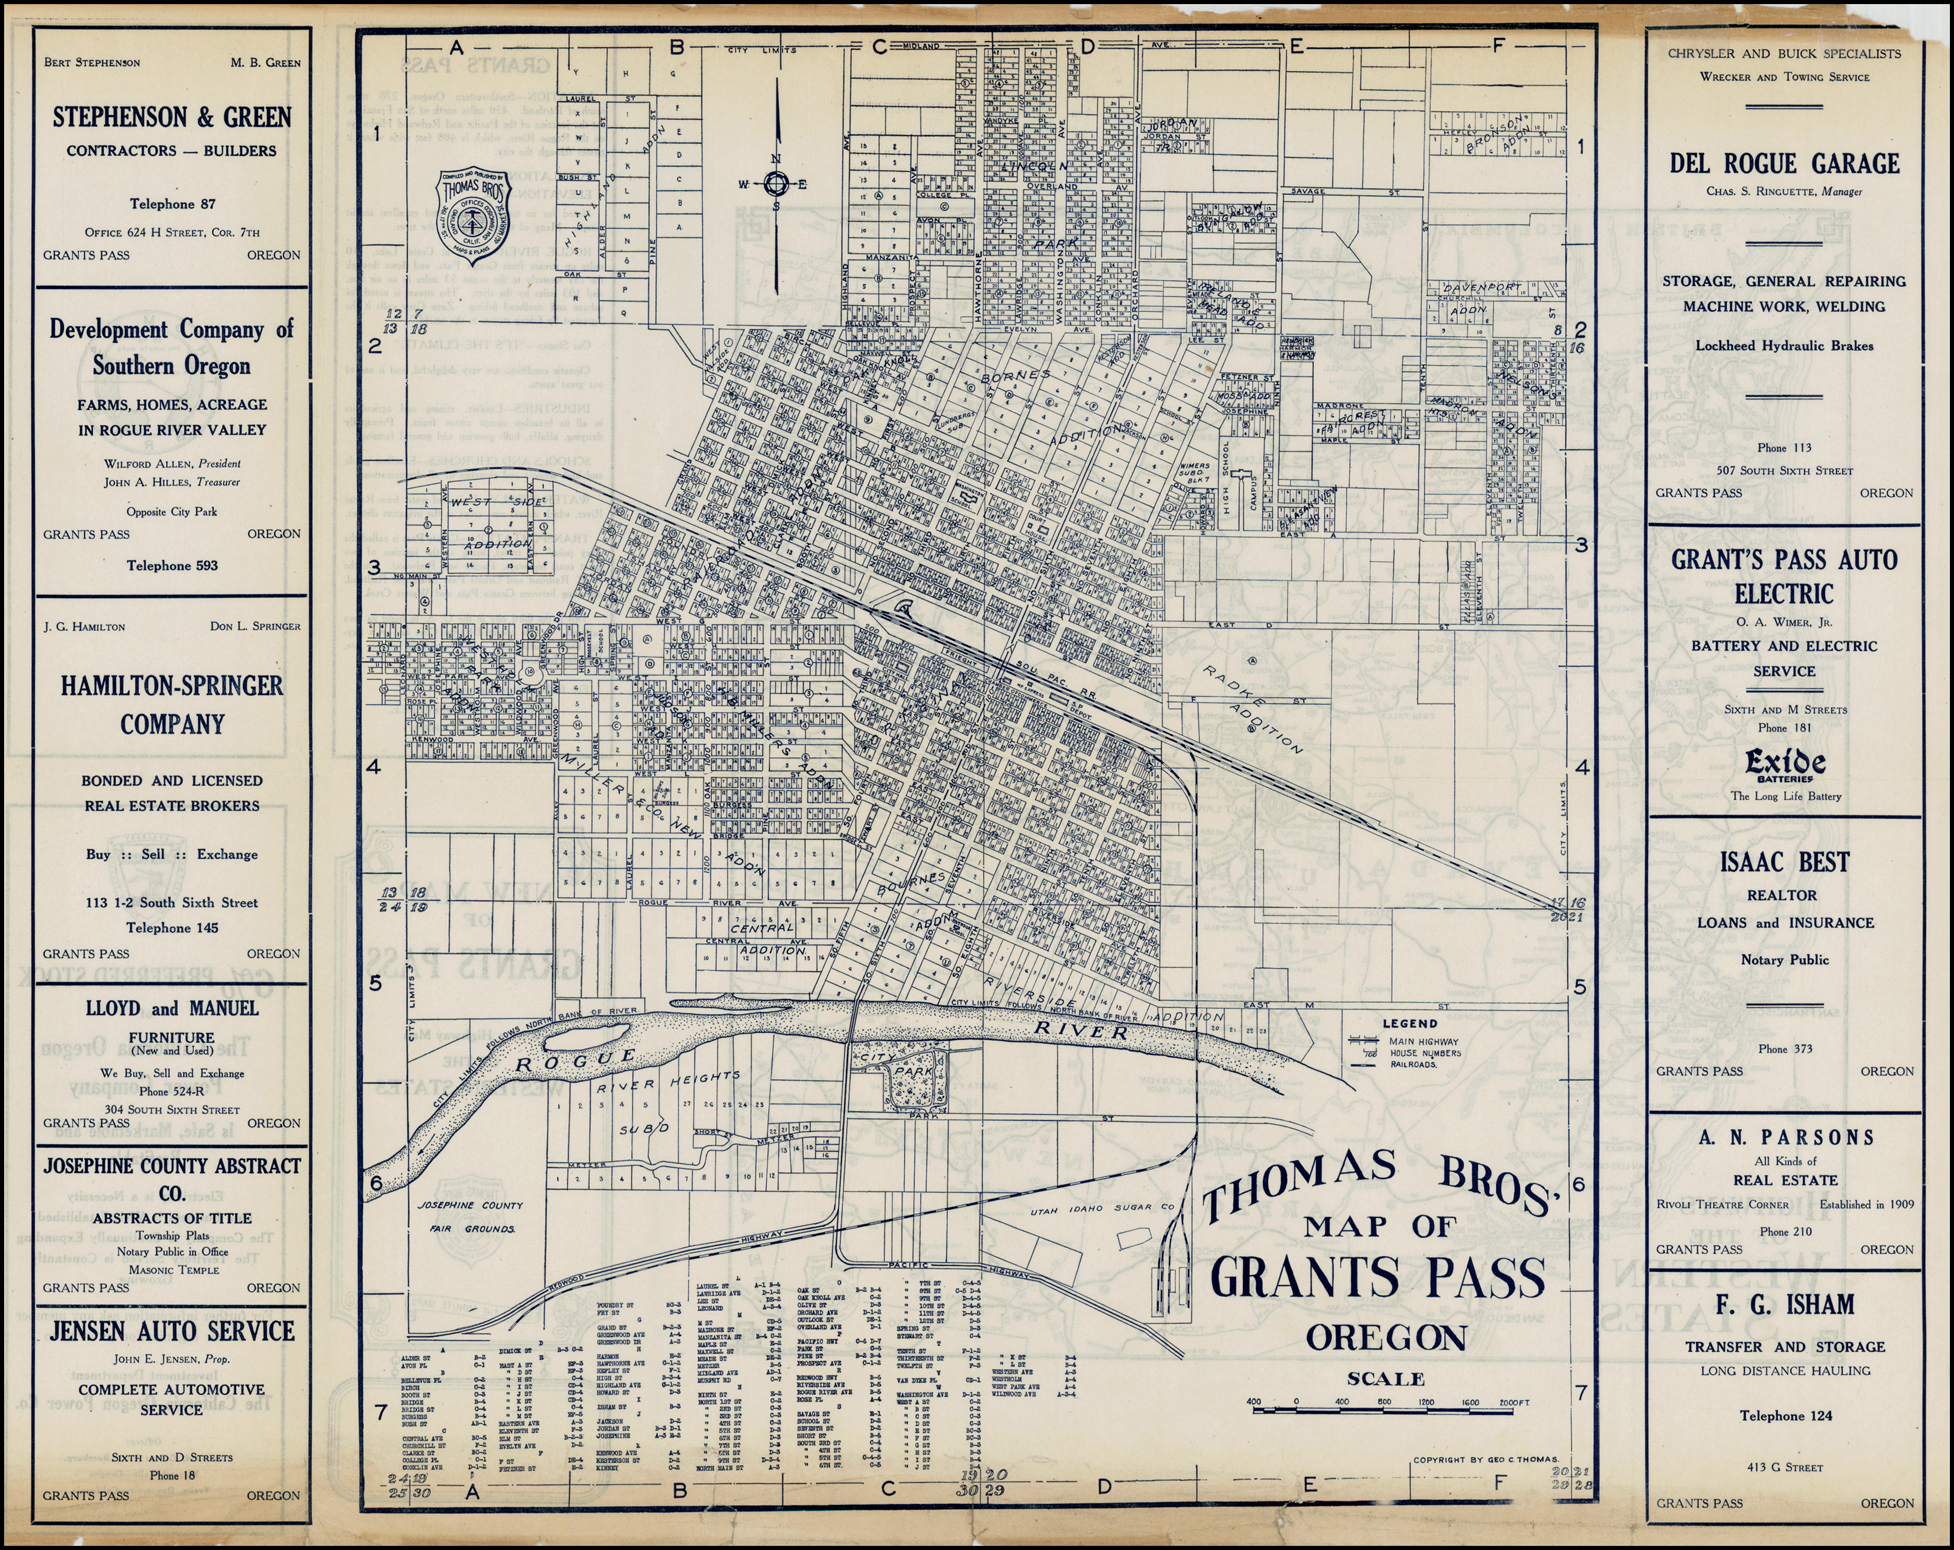 Thomas Bros. Map of Grants P Oregon - Barry Lawrence ... on